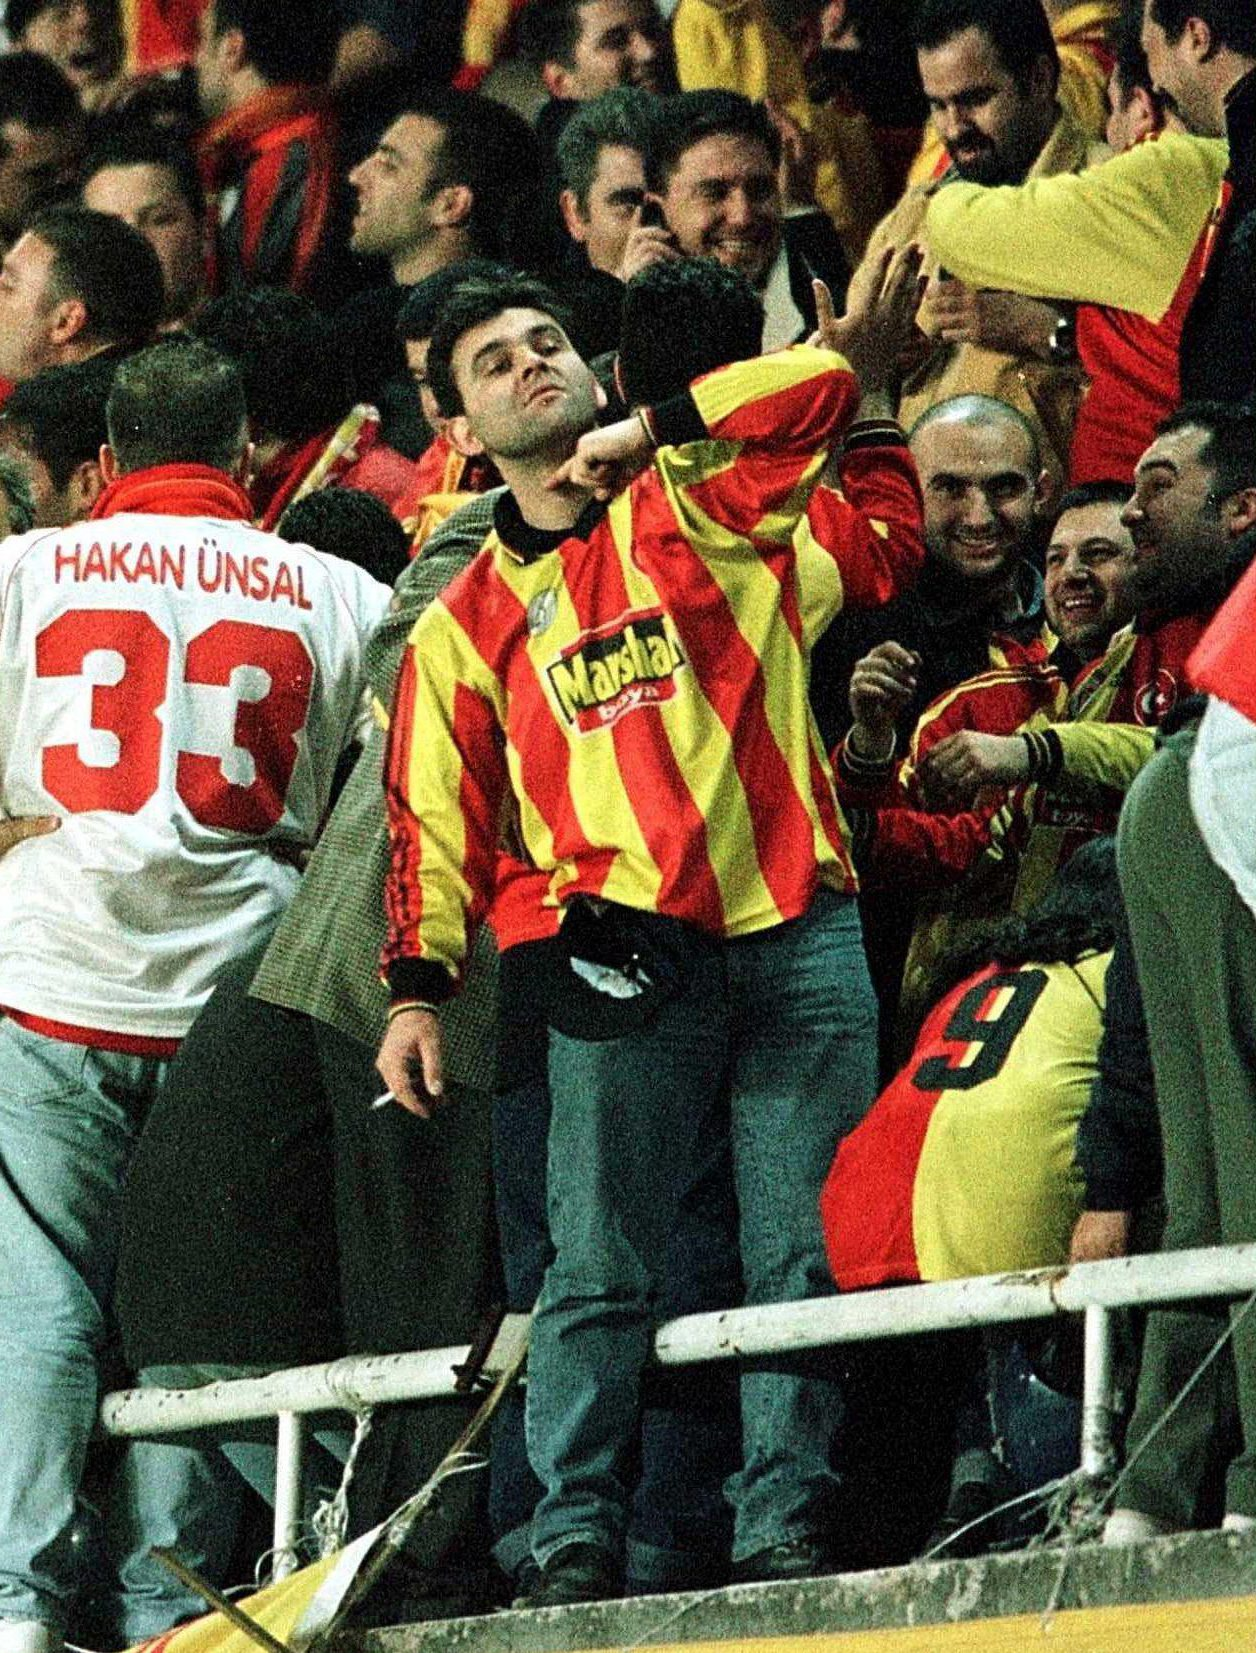 Hostilities between Galatasaray and English teams reached an all-time high